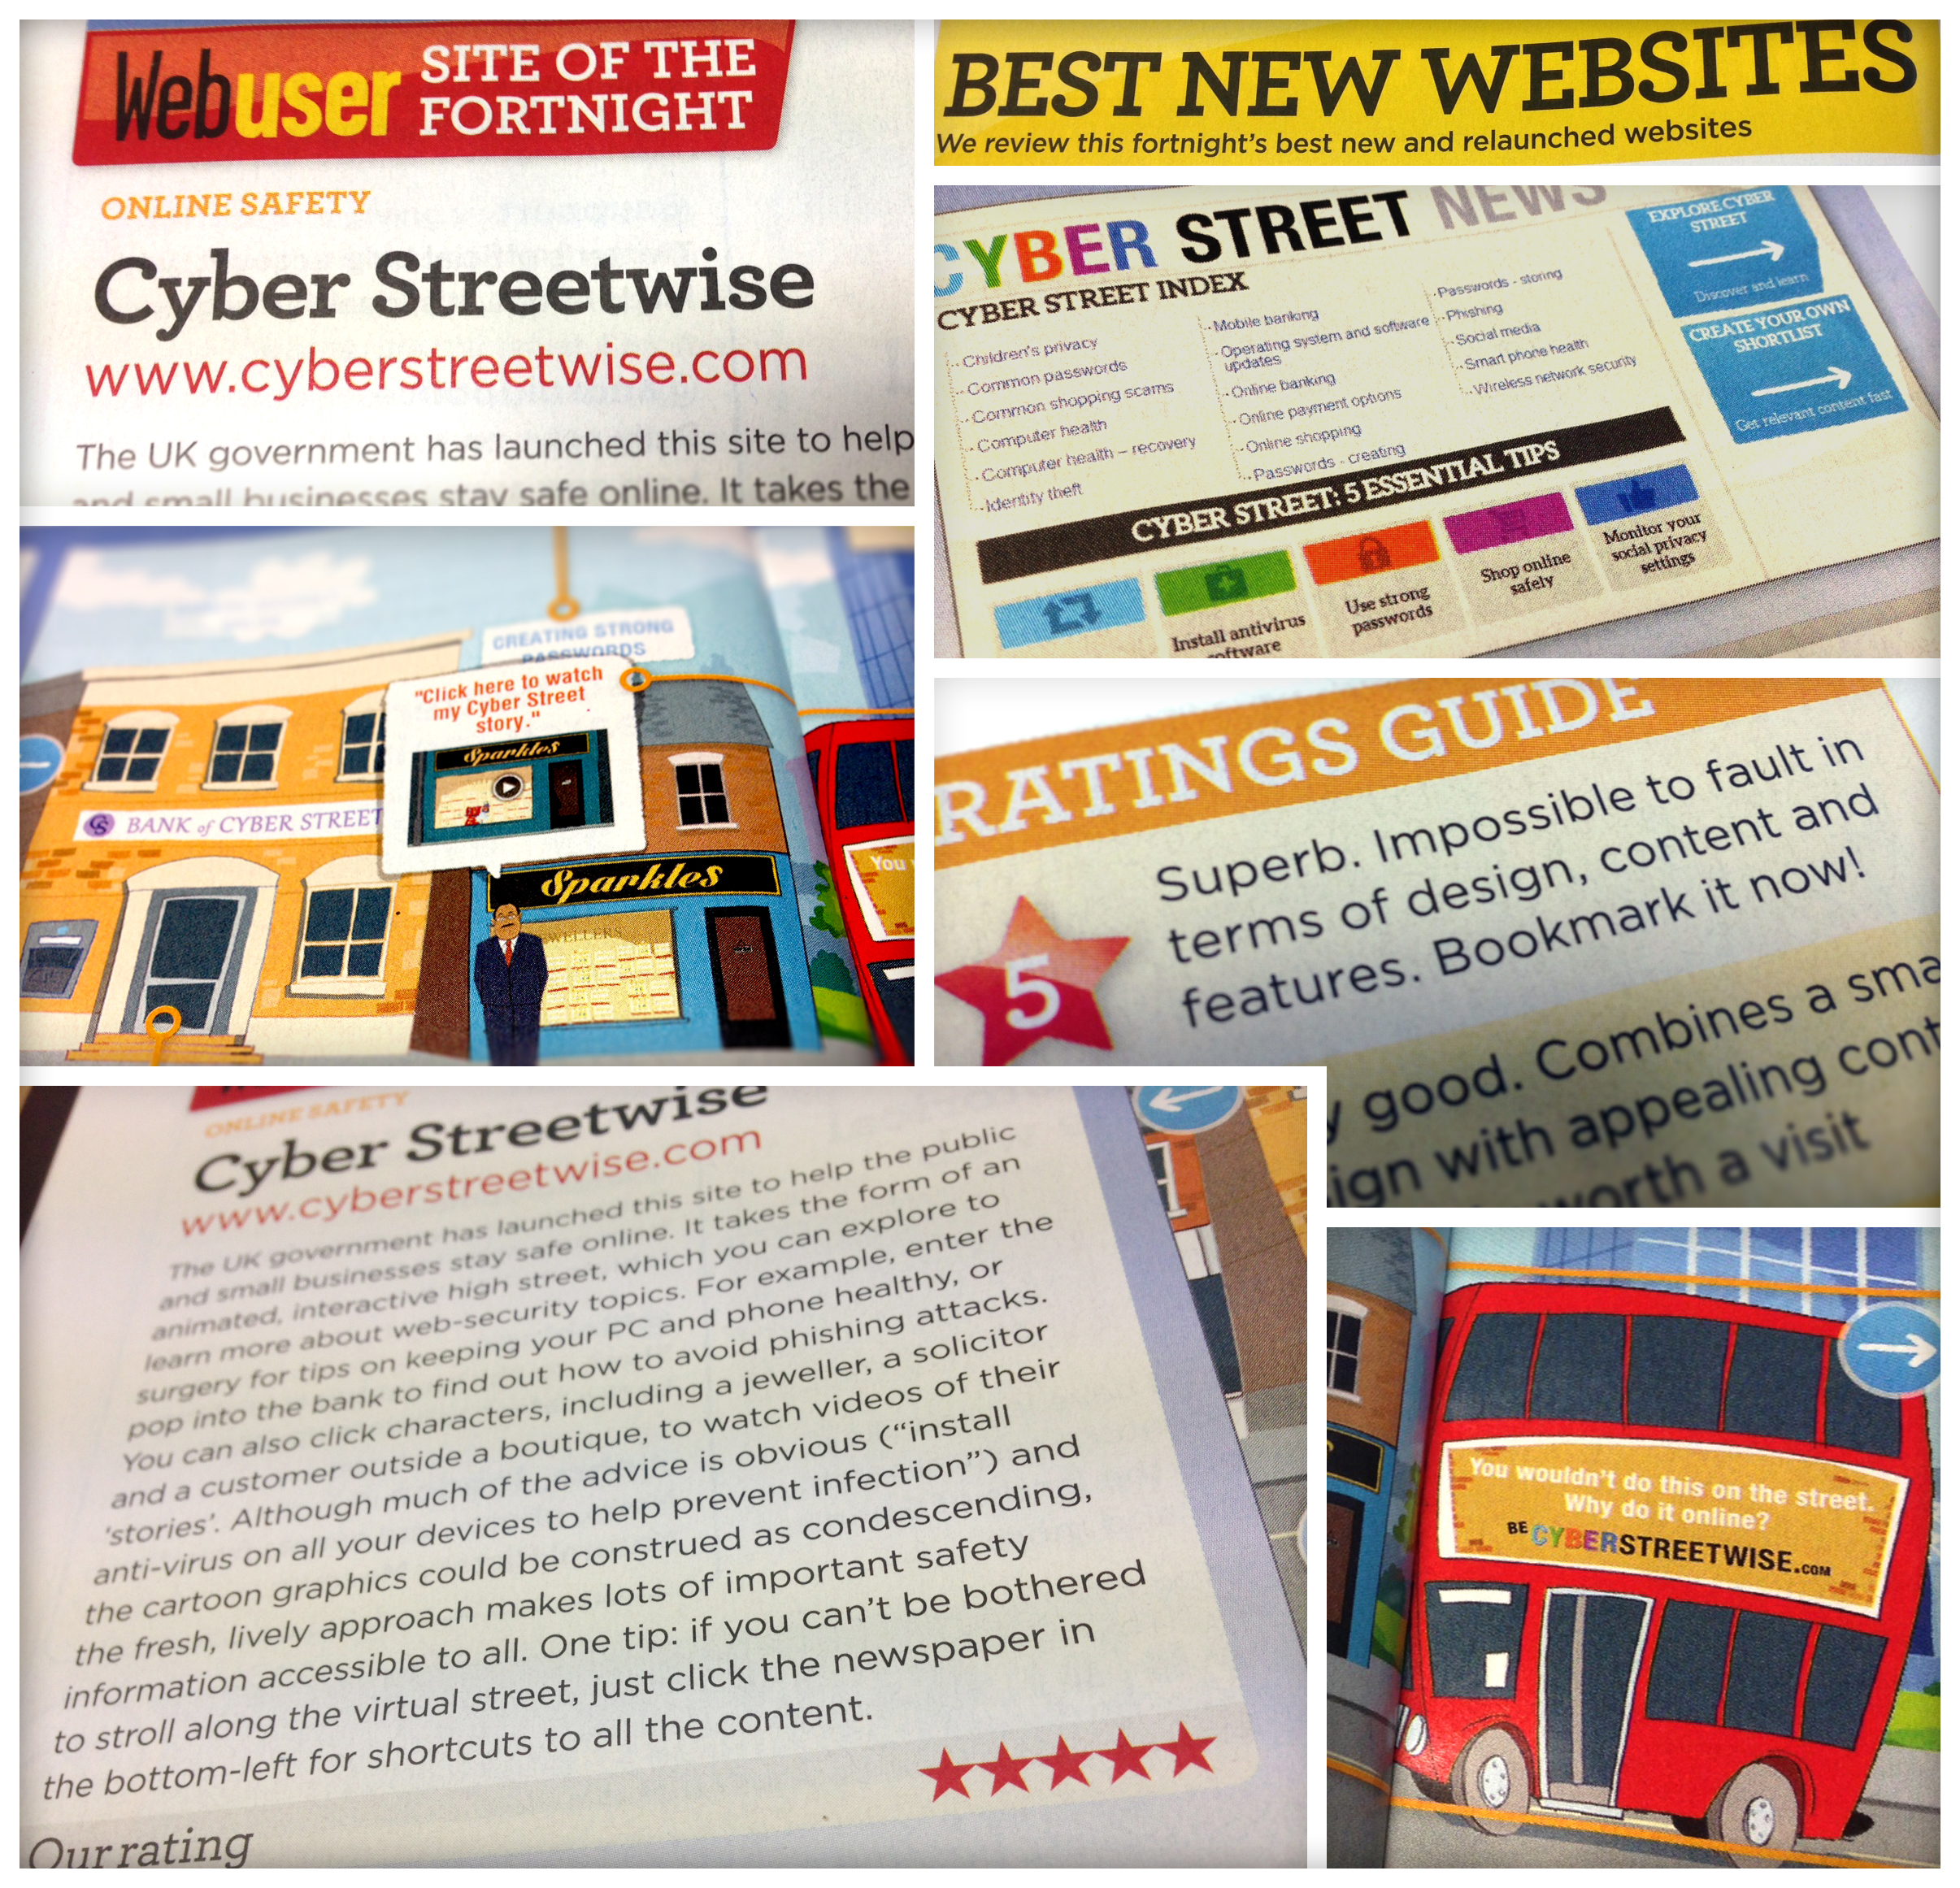 CyberStreetwise review